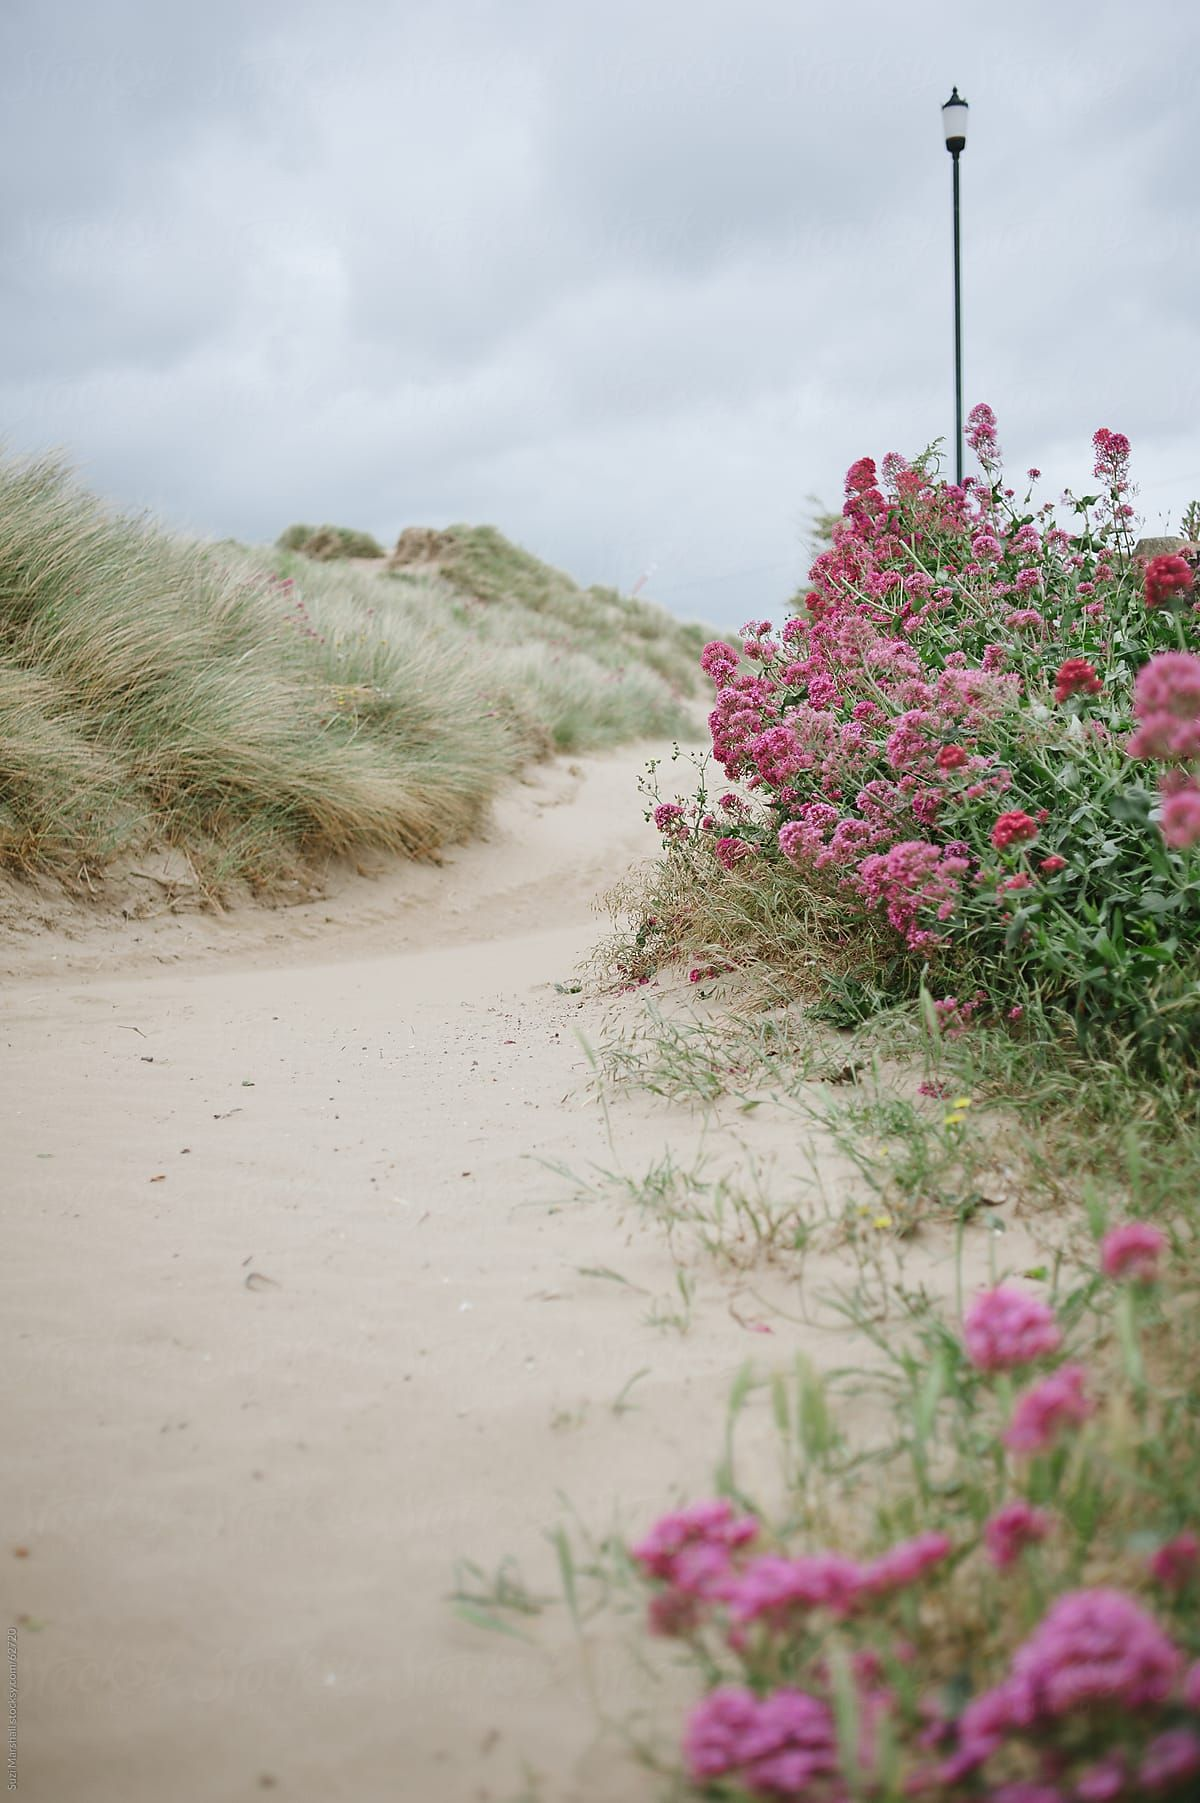 Path Lined With Flowers And Seagrass In Sand Dunes At The Beach Stocksy United Sea Grass Beach Beach Scenes